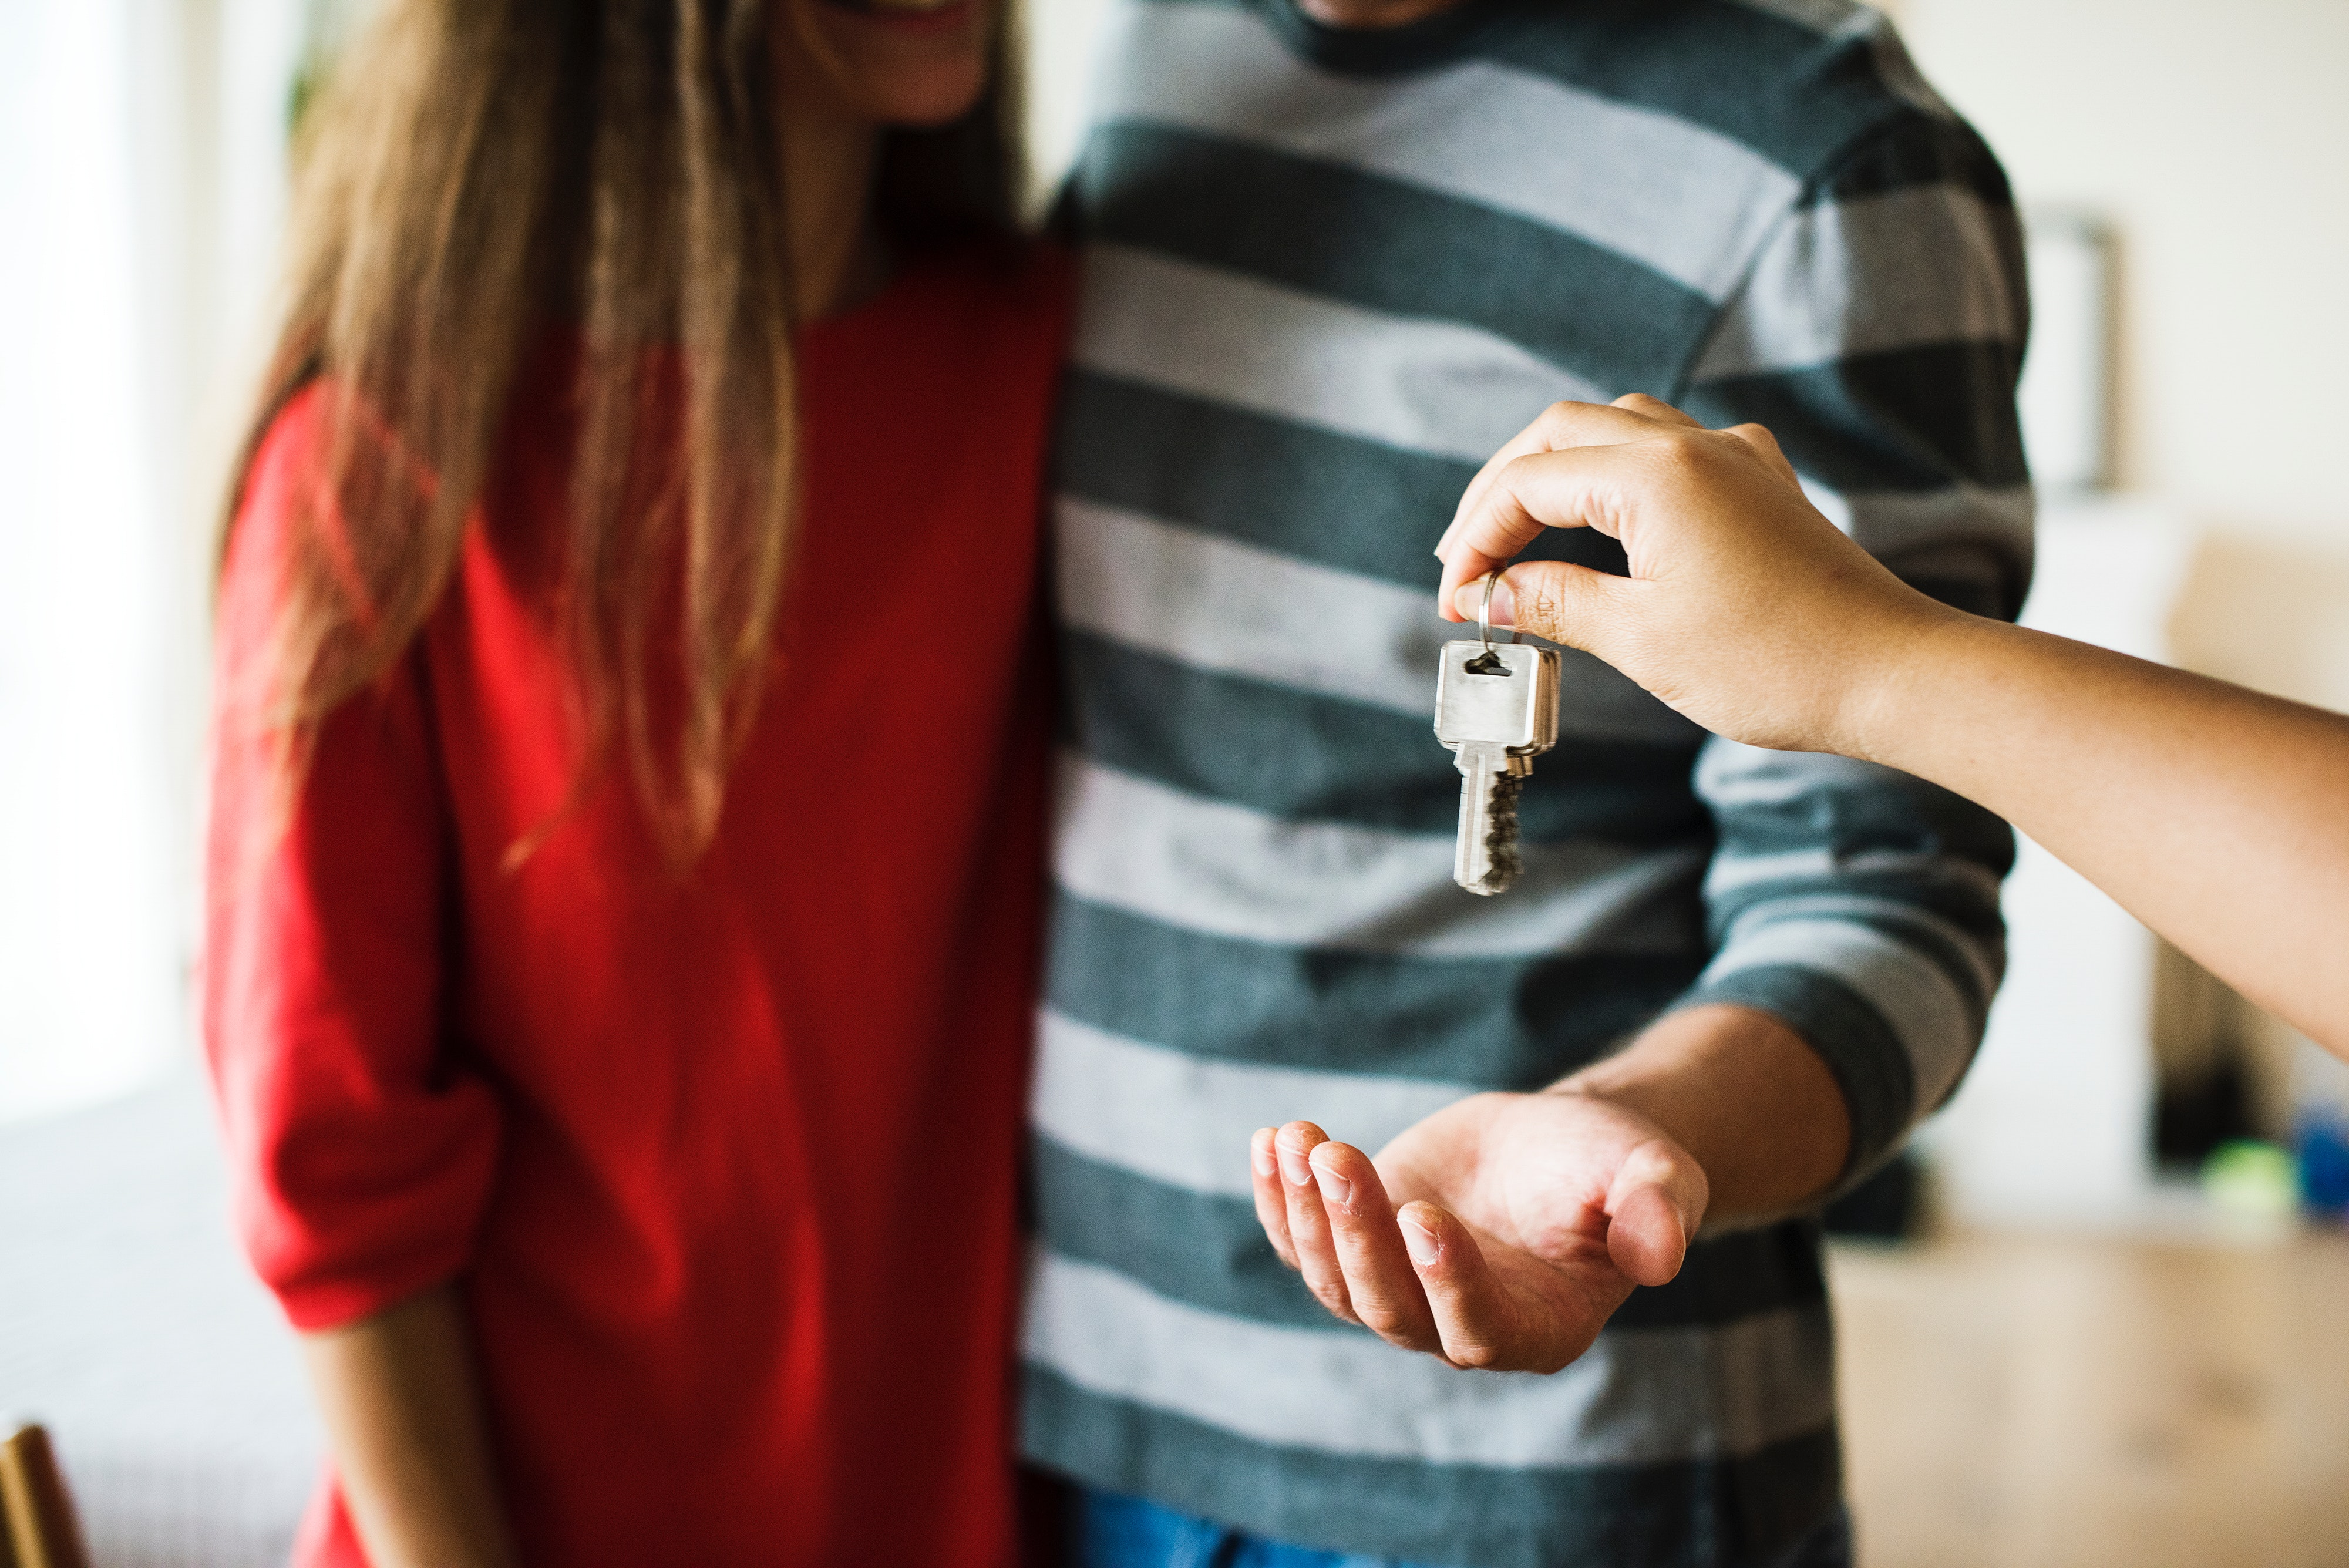 Where Should First-Time Buyers Purchase Property?